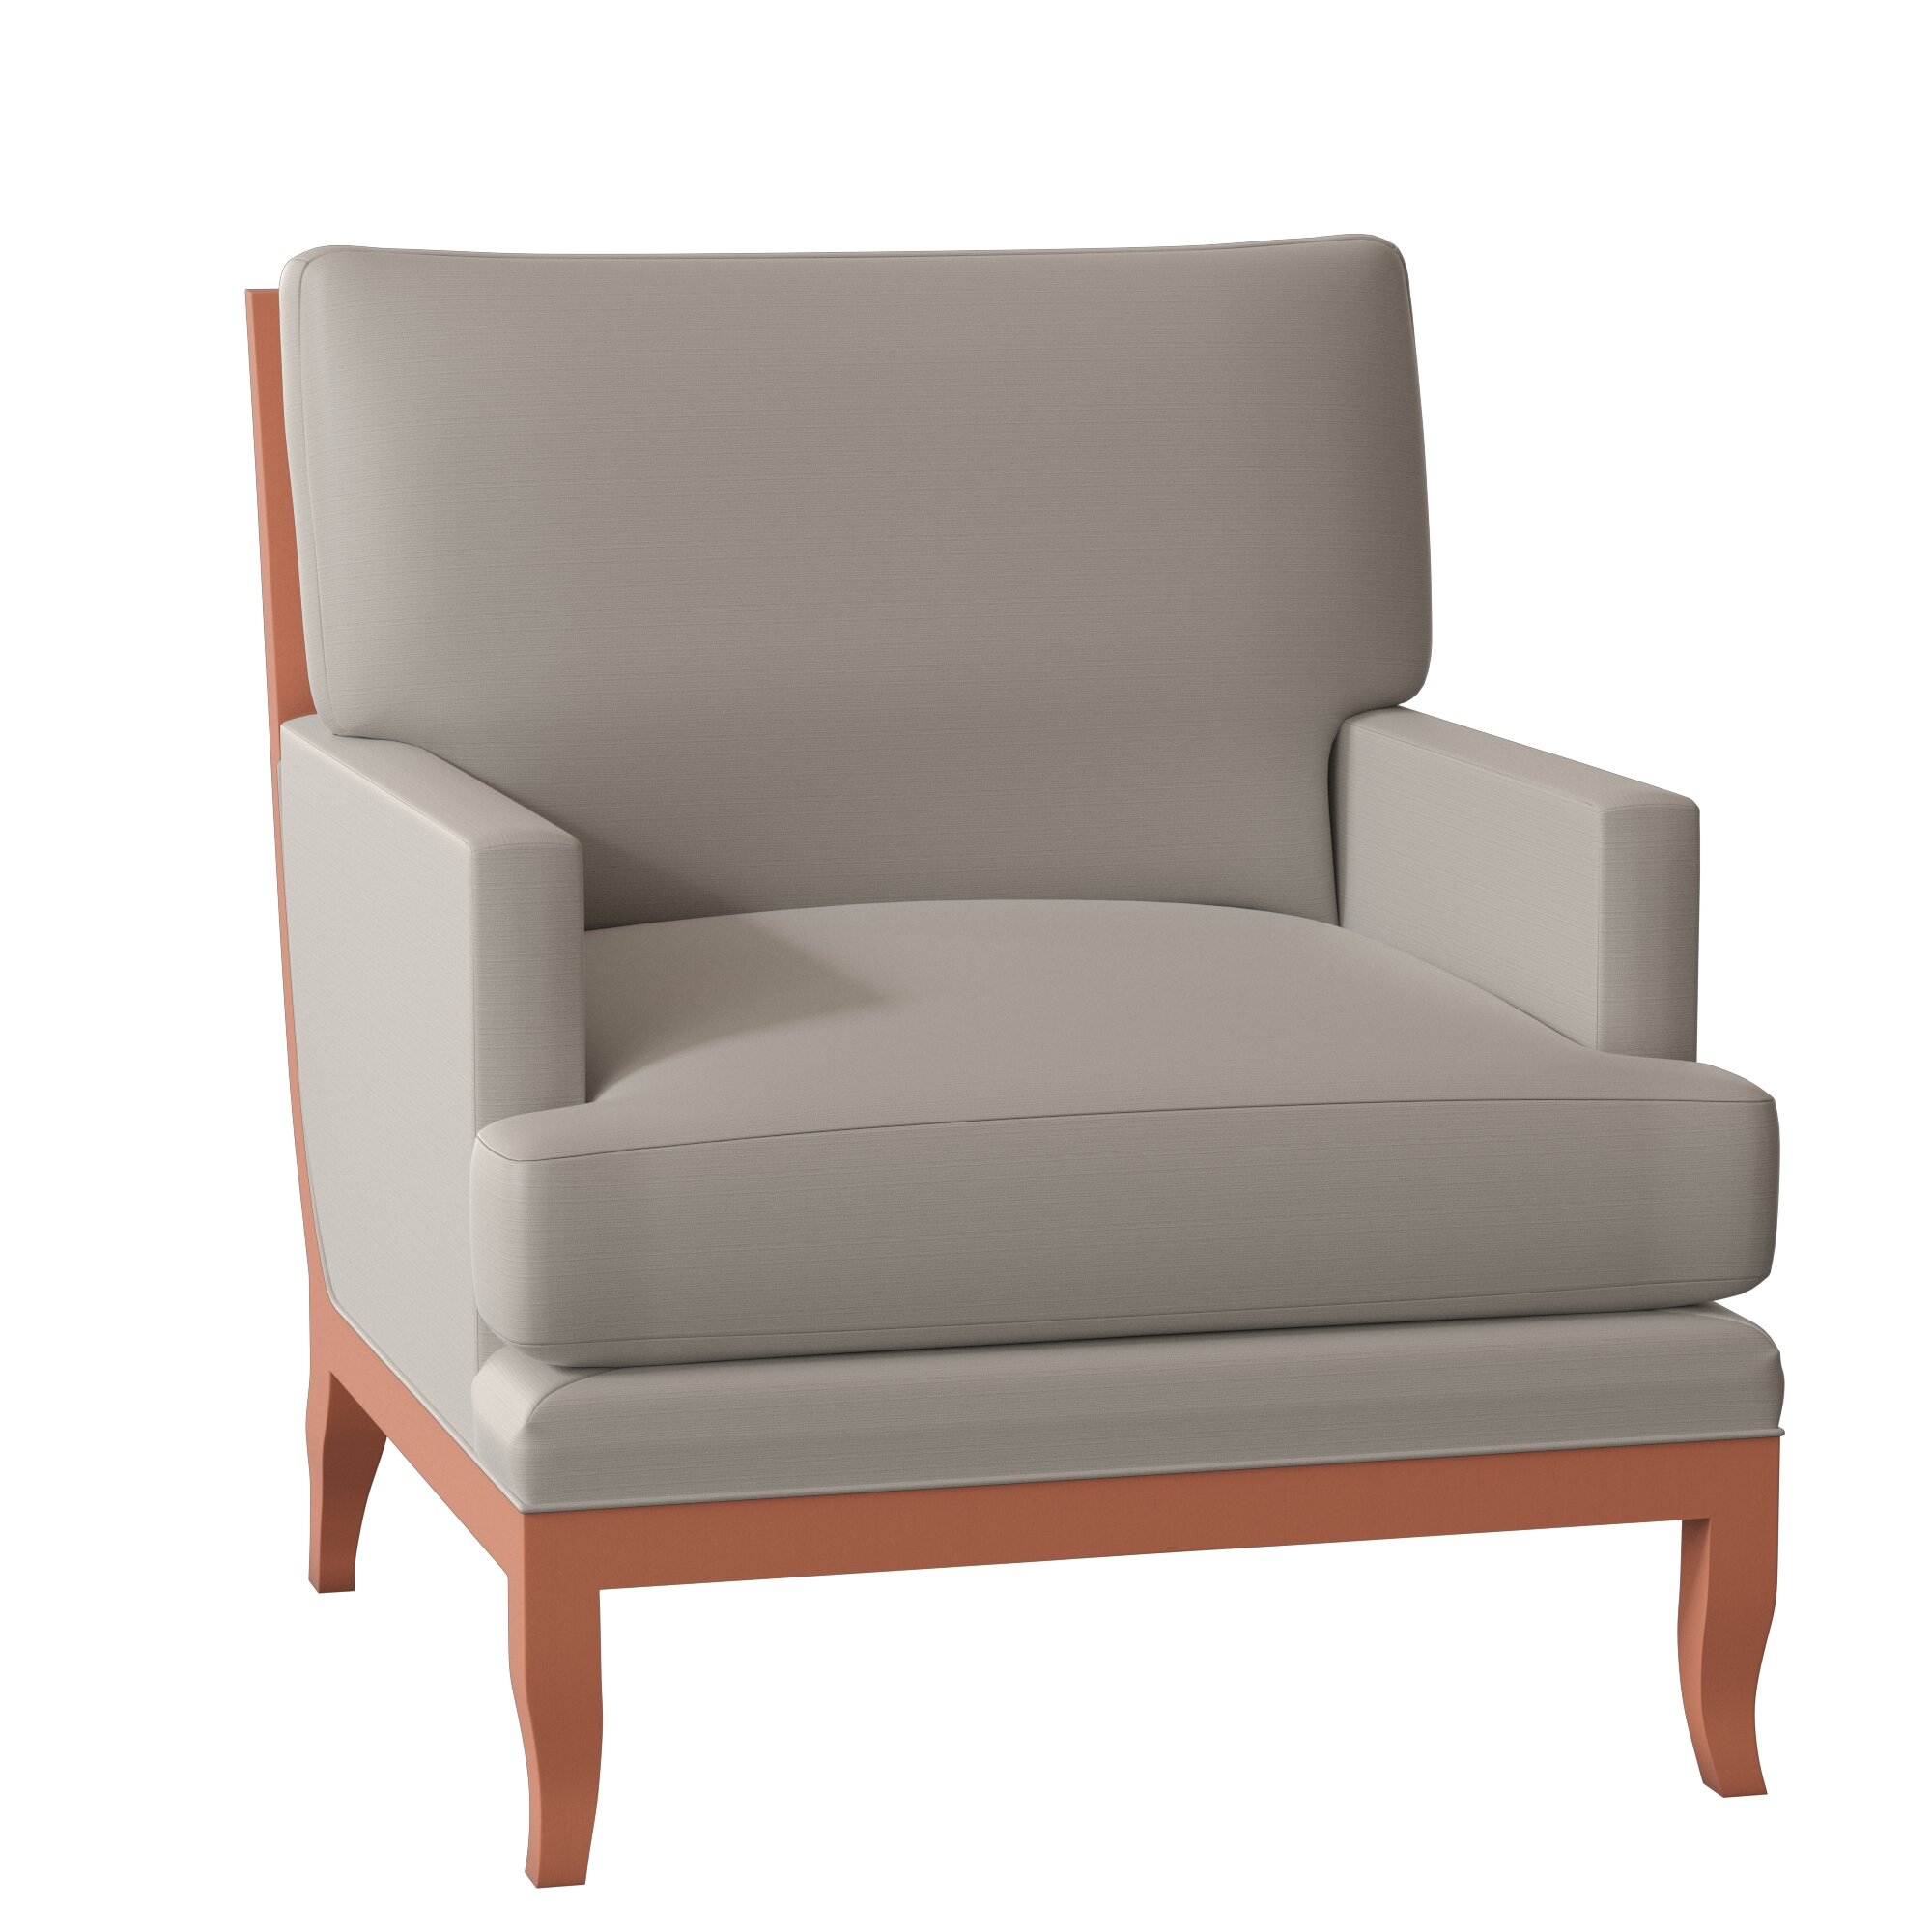 Haylles Armchair Regarding Alexander Cotton Blend Armchairs And Ottoman (View 5 of 15)